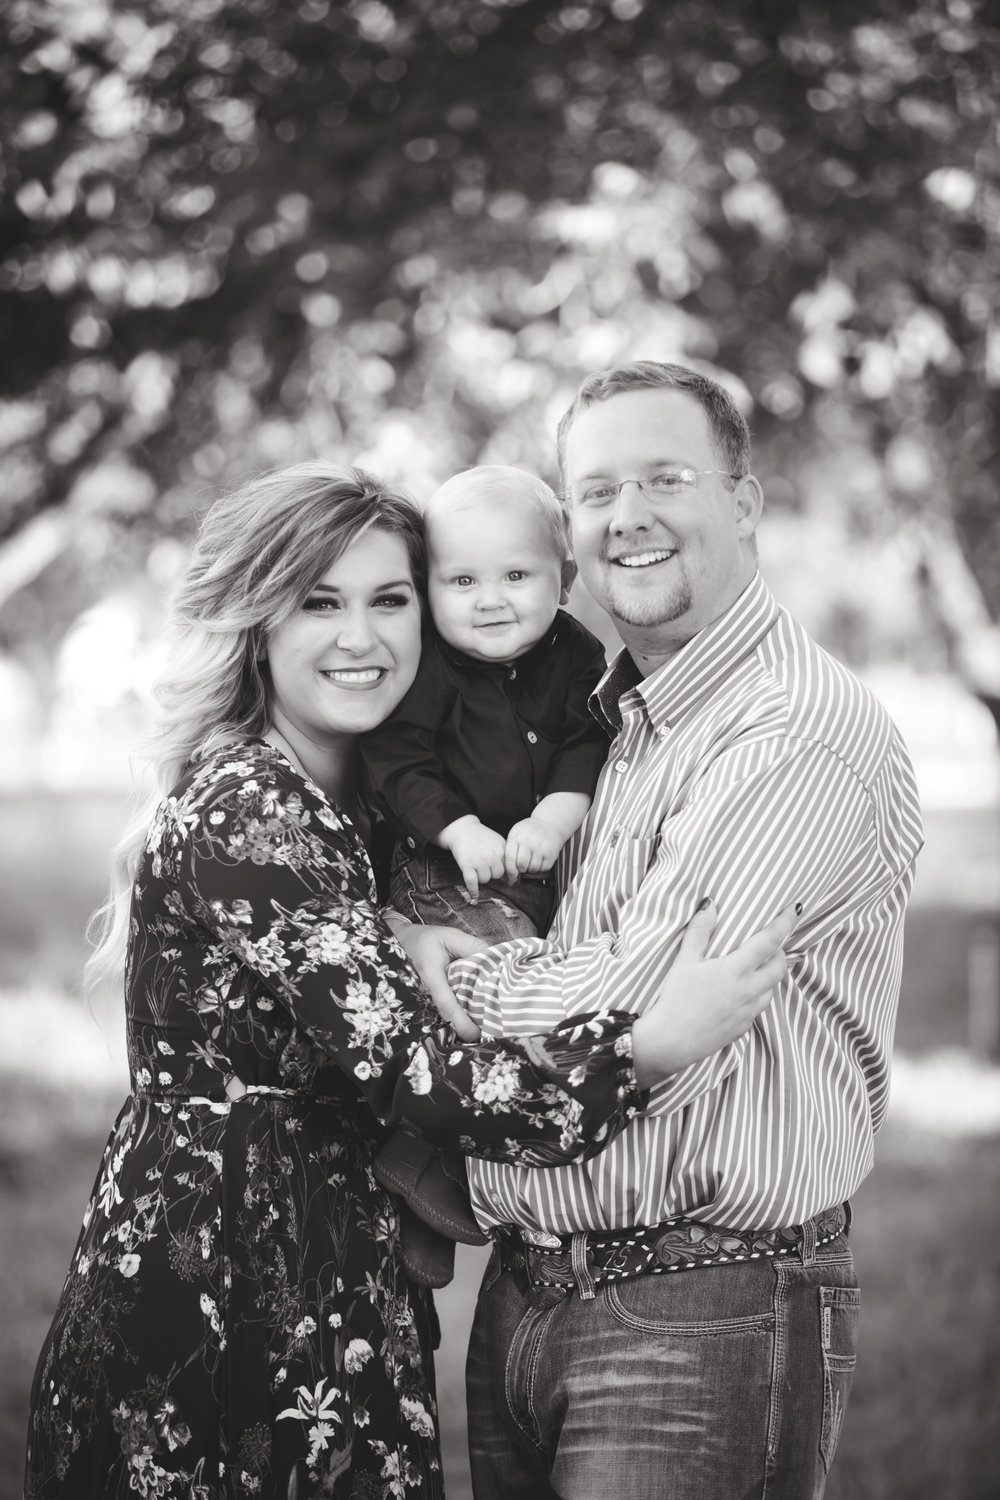 Marble_Falls_Photographer_Horseshoe_Bay_Stokes_Family19.jpg